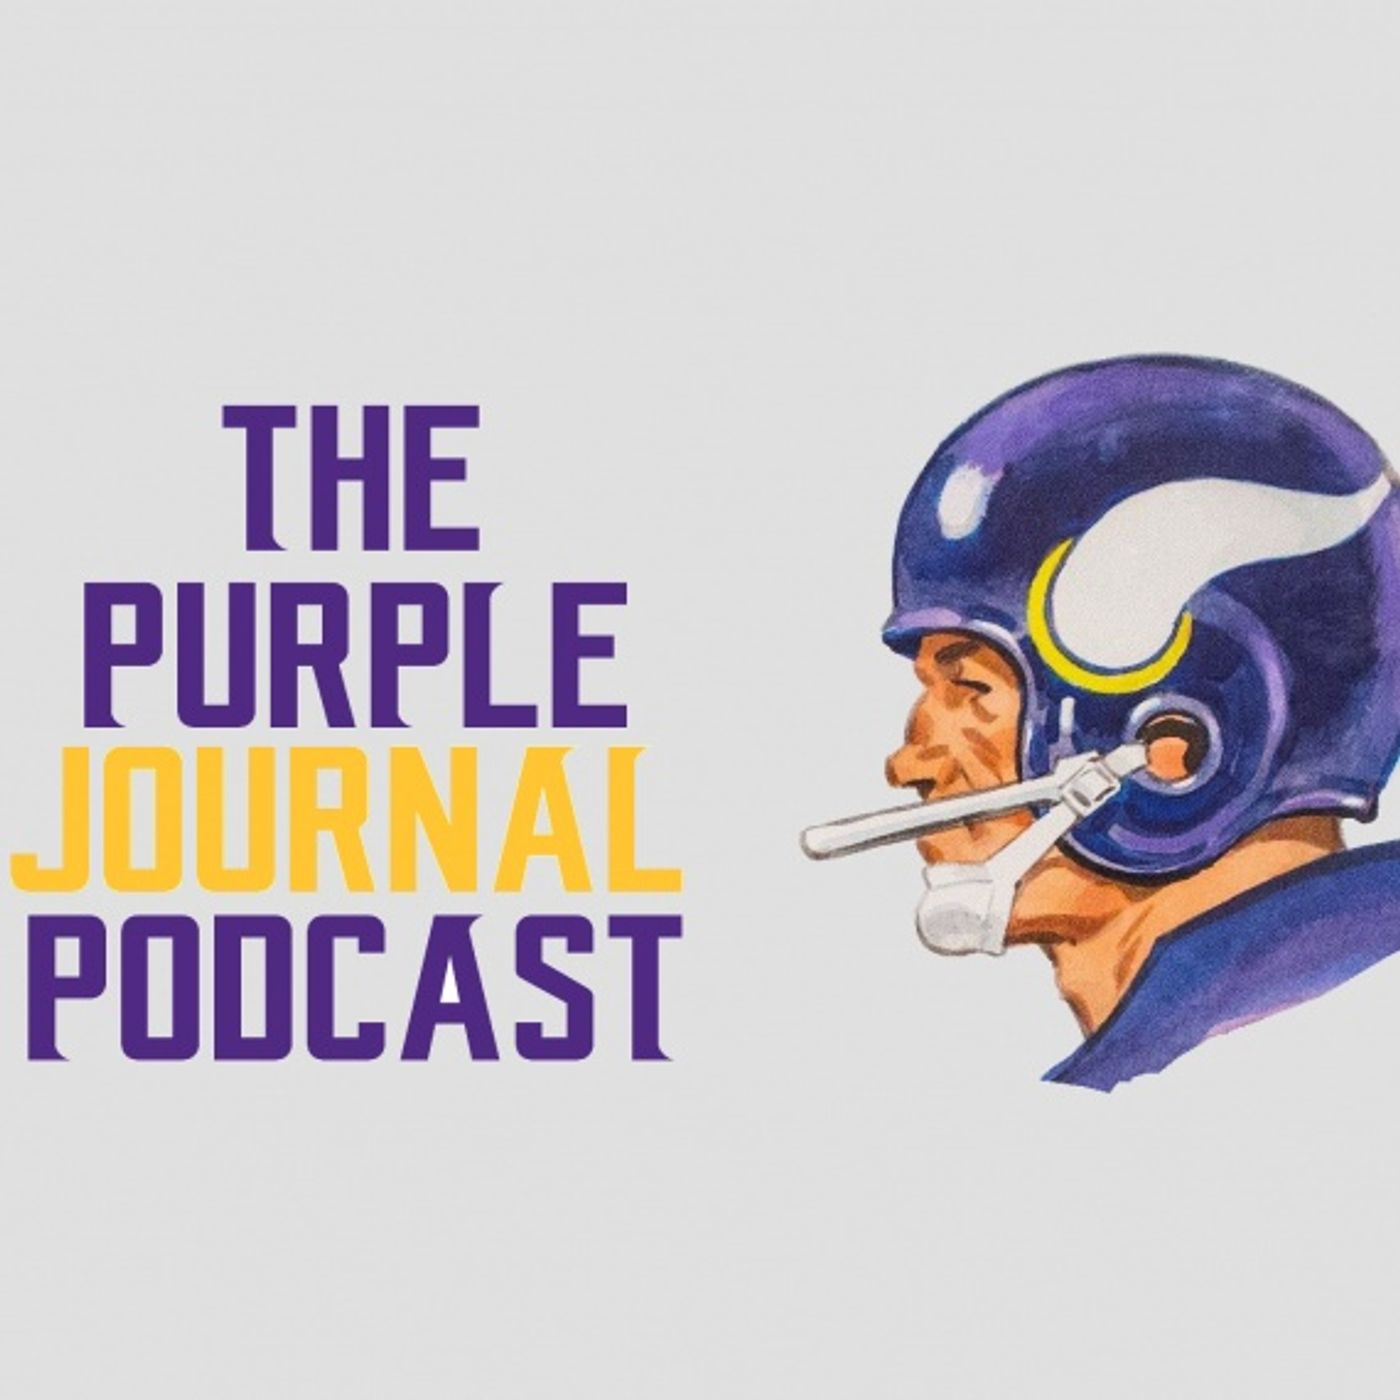 The purpleJOURNAL Podcast - The Bring on the Broncos Edition